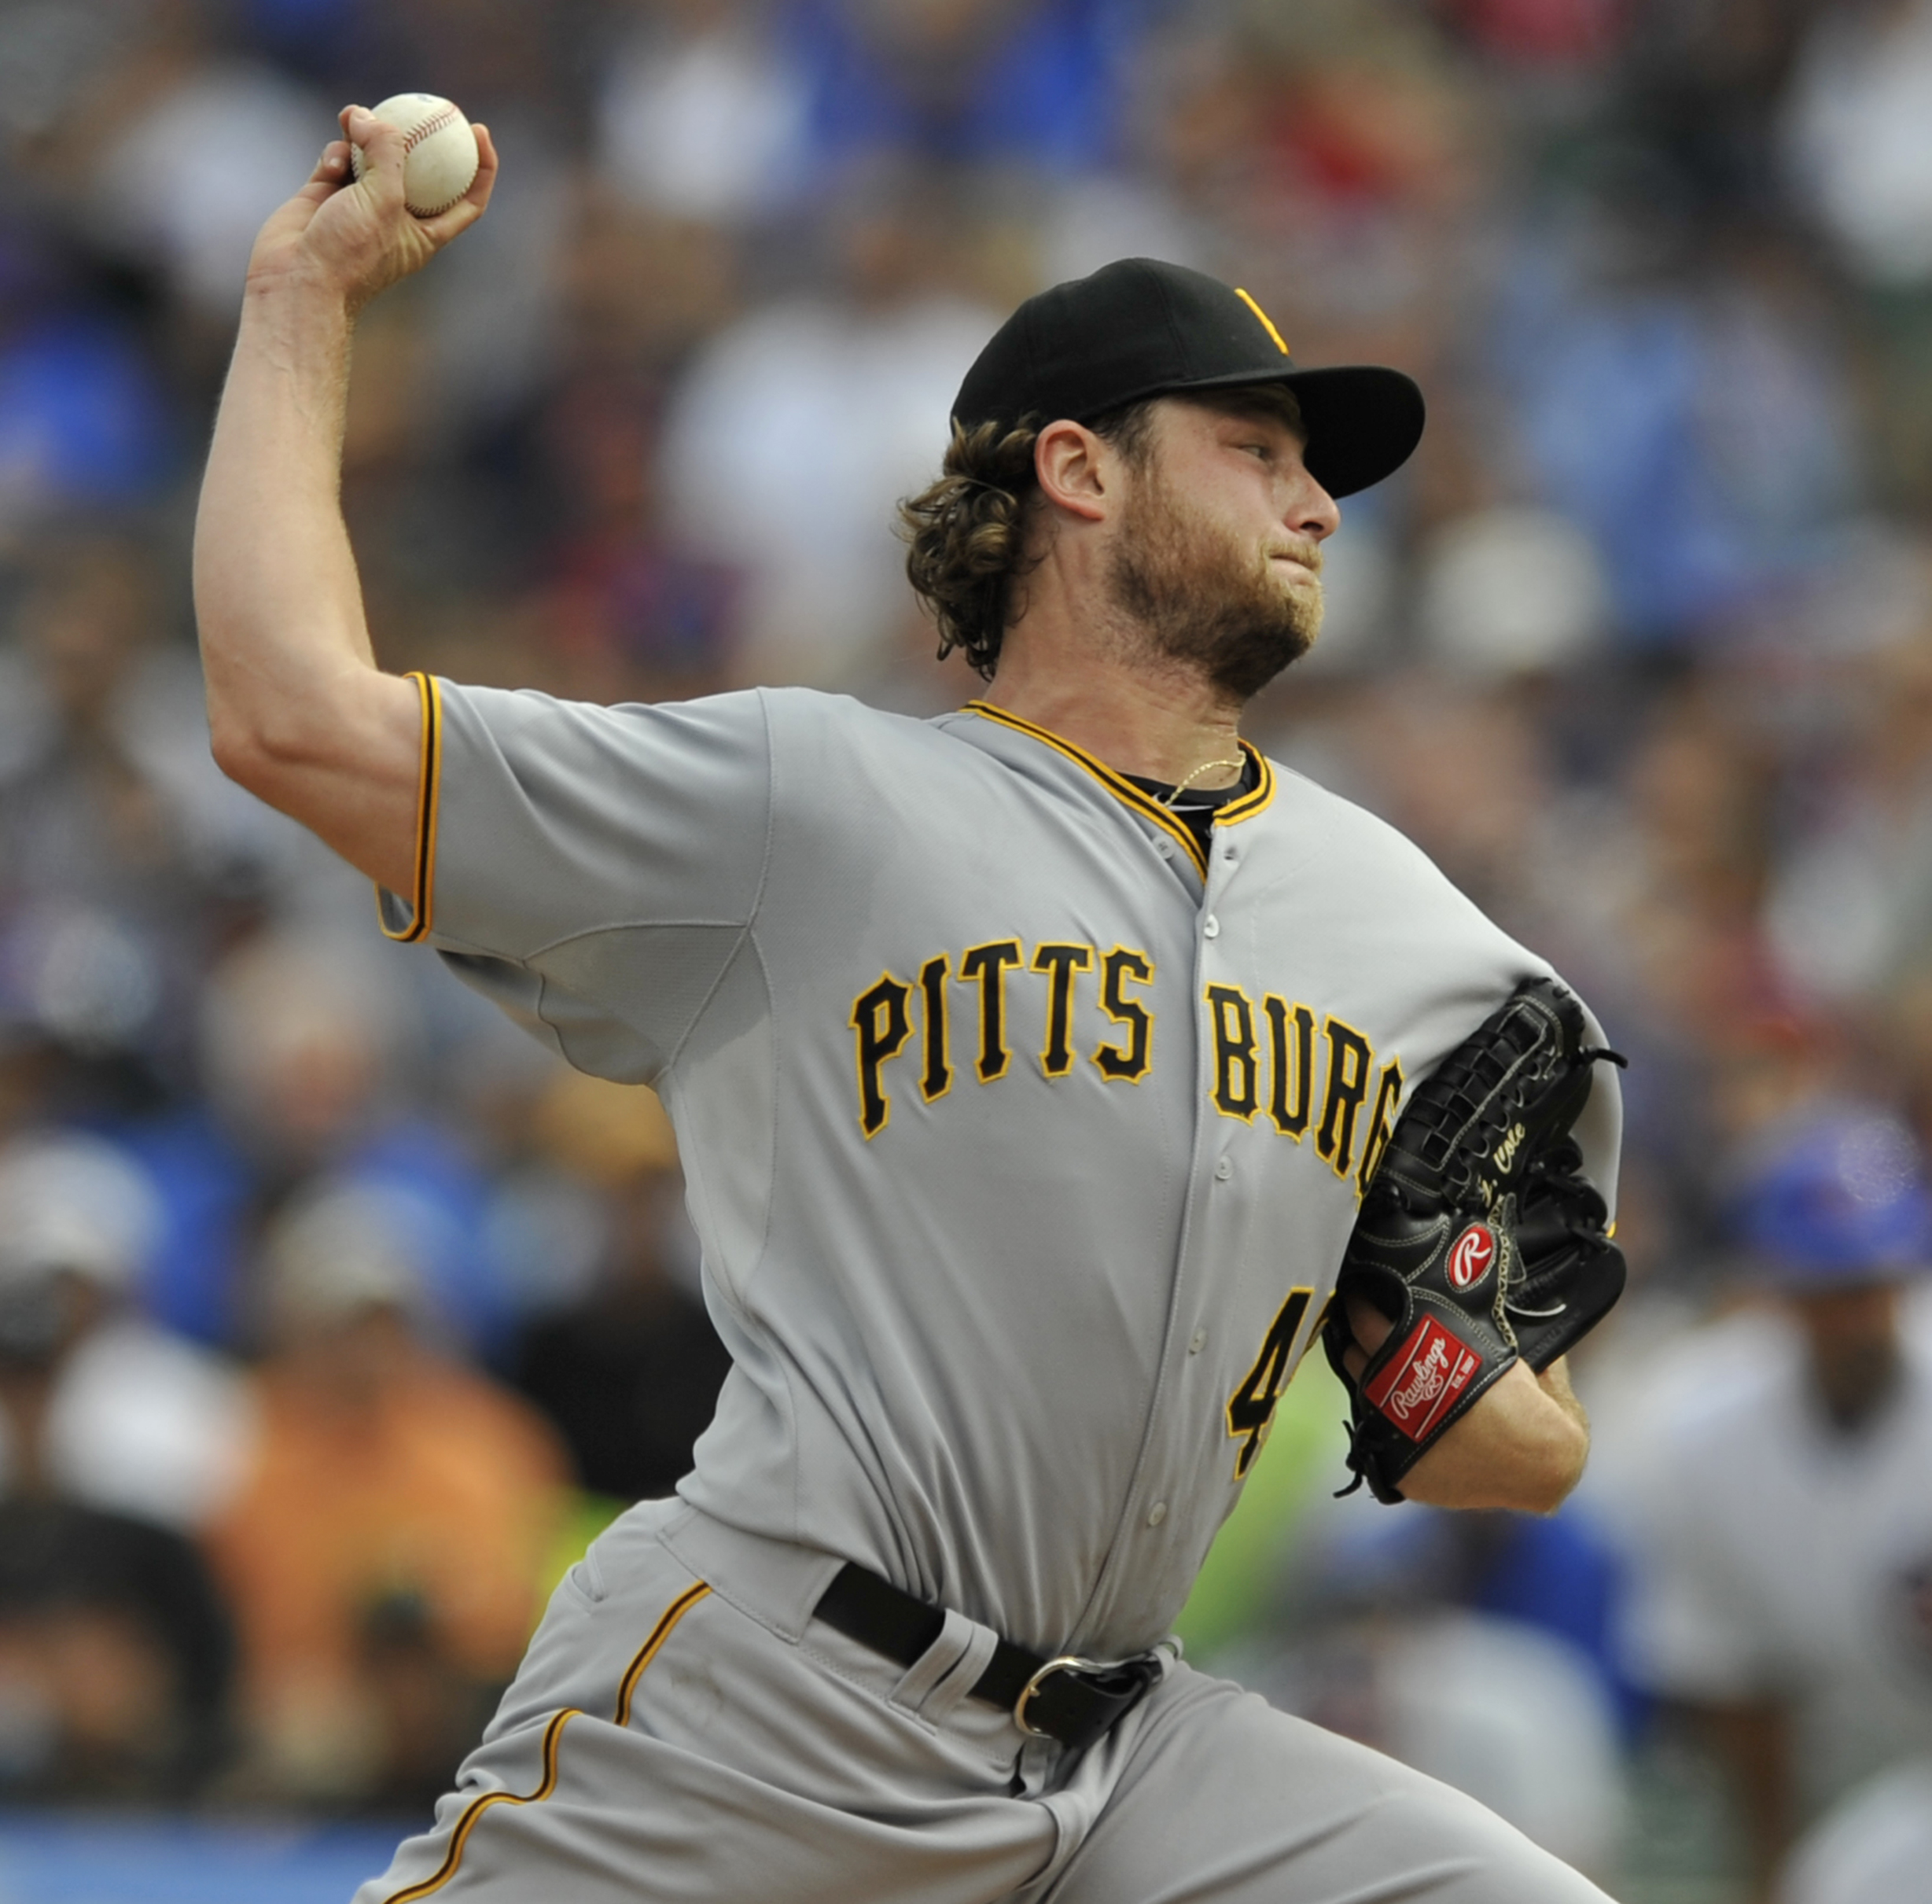 Pittsburgh Pirates starter Gerrit Cole